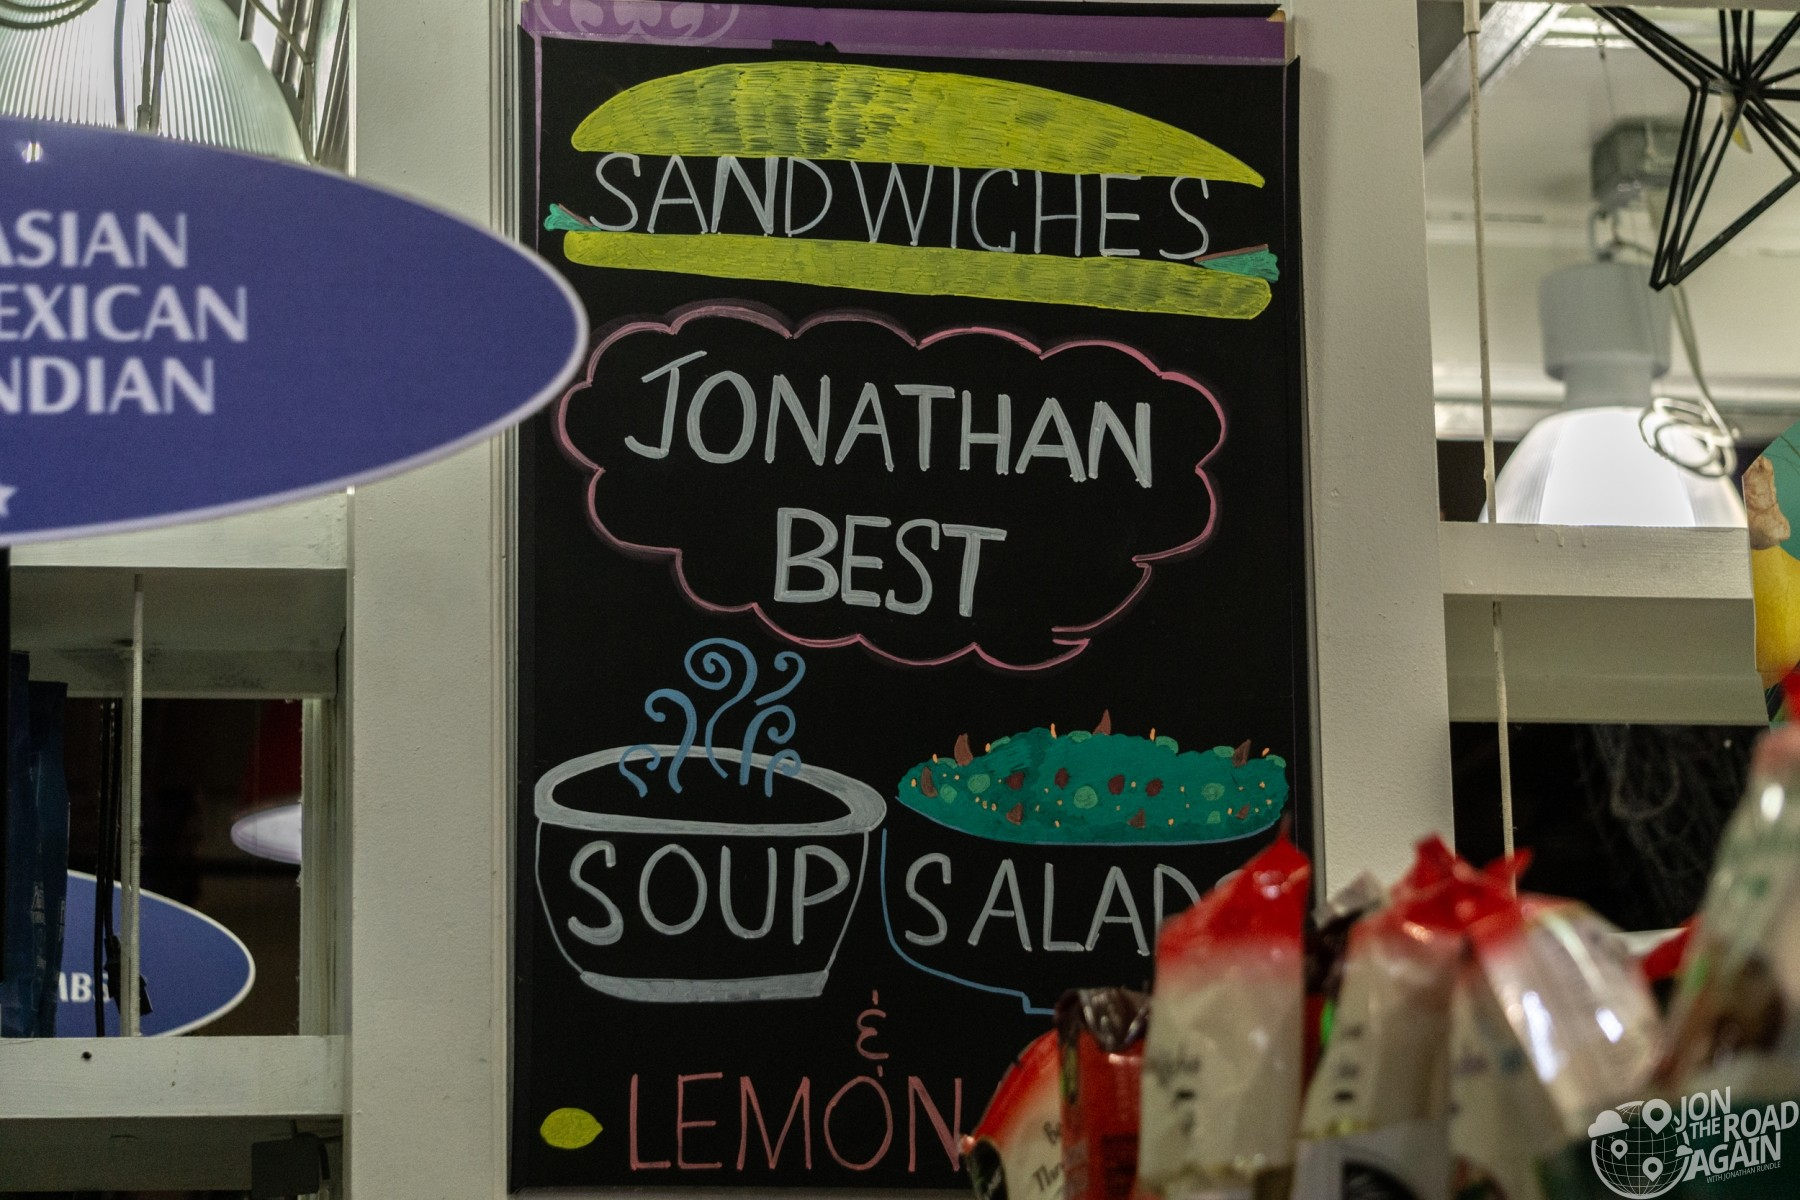 Jonathan Best Sandwiches